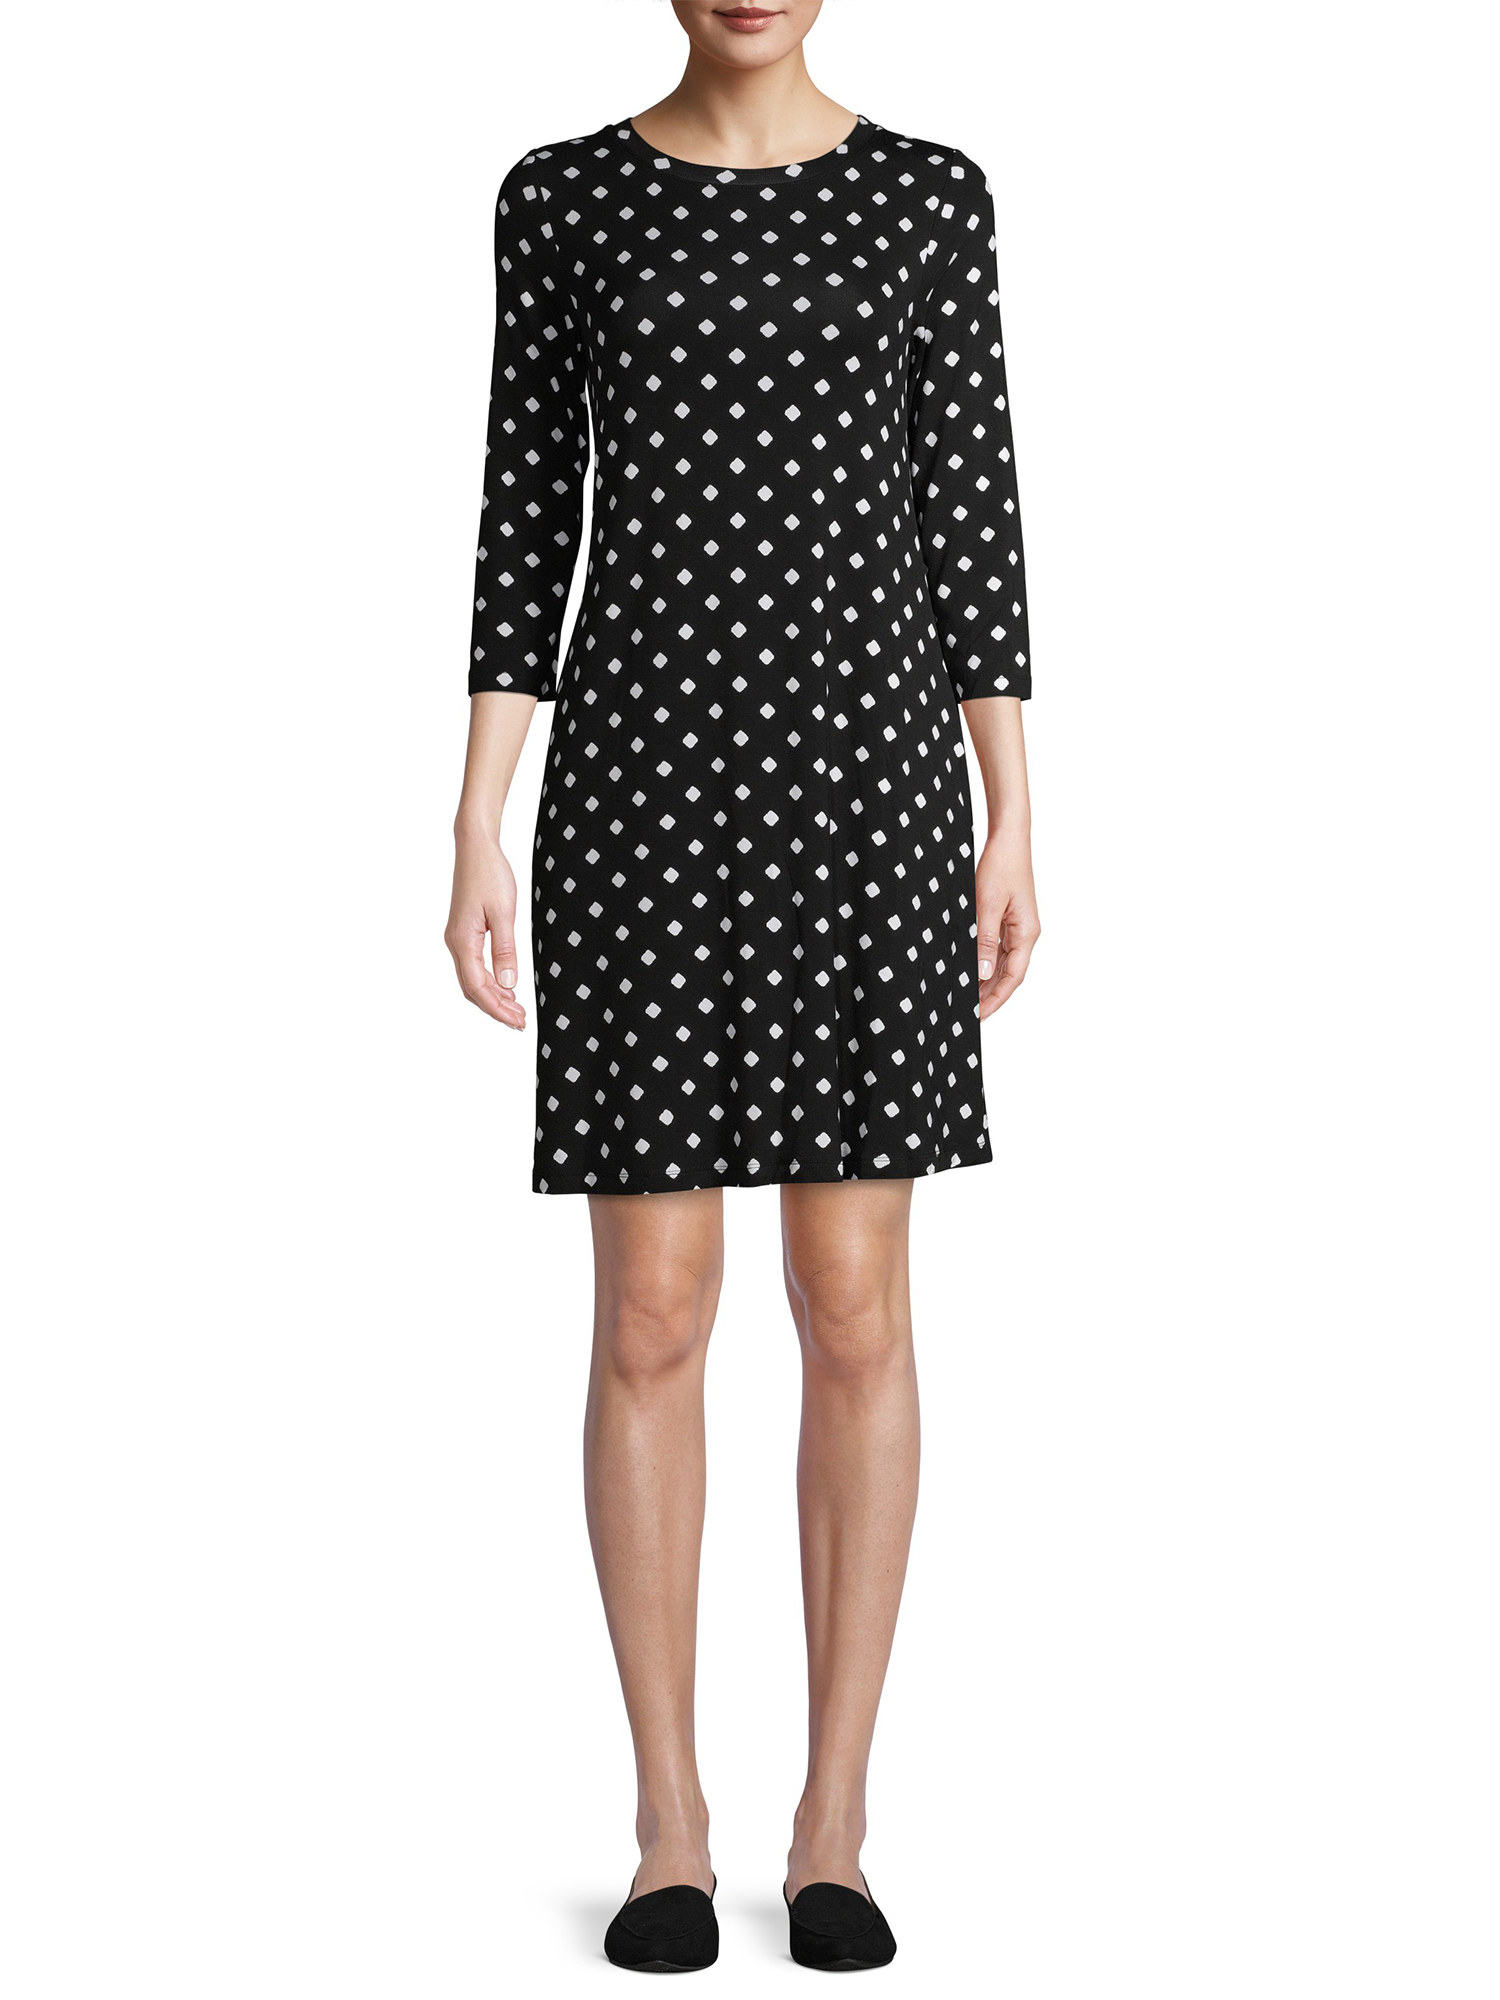 The black and white polka dot dress